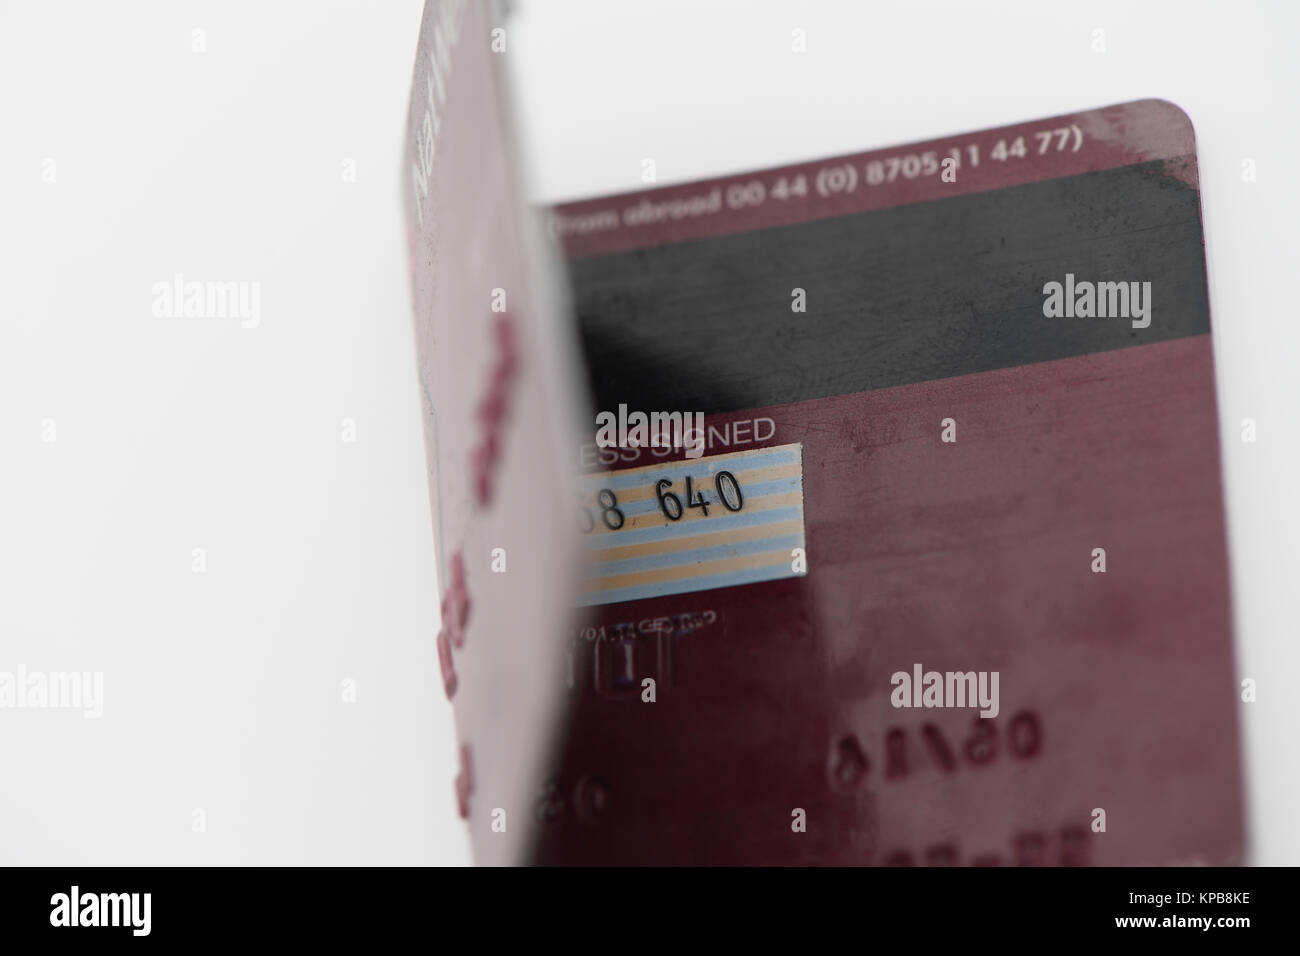 A folded Visa  debit card from Nat West on white background. Stock Photo